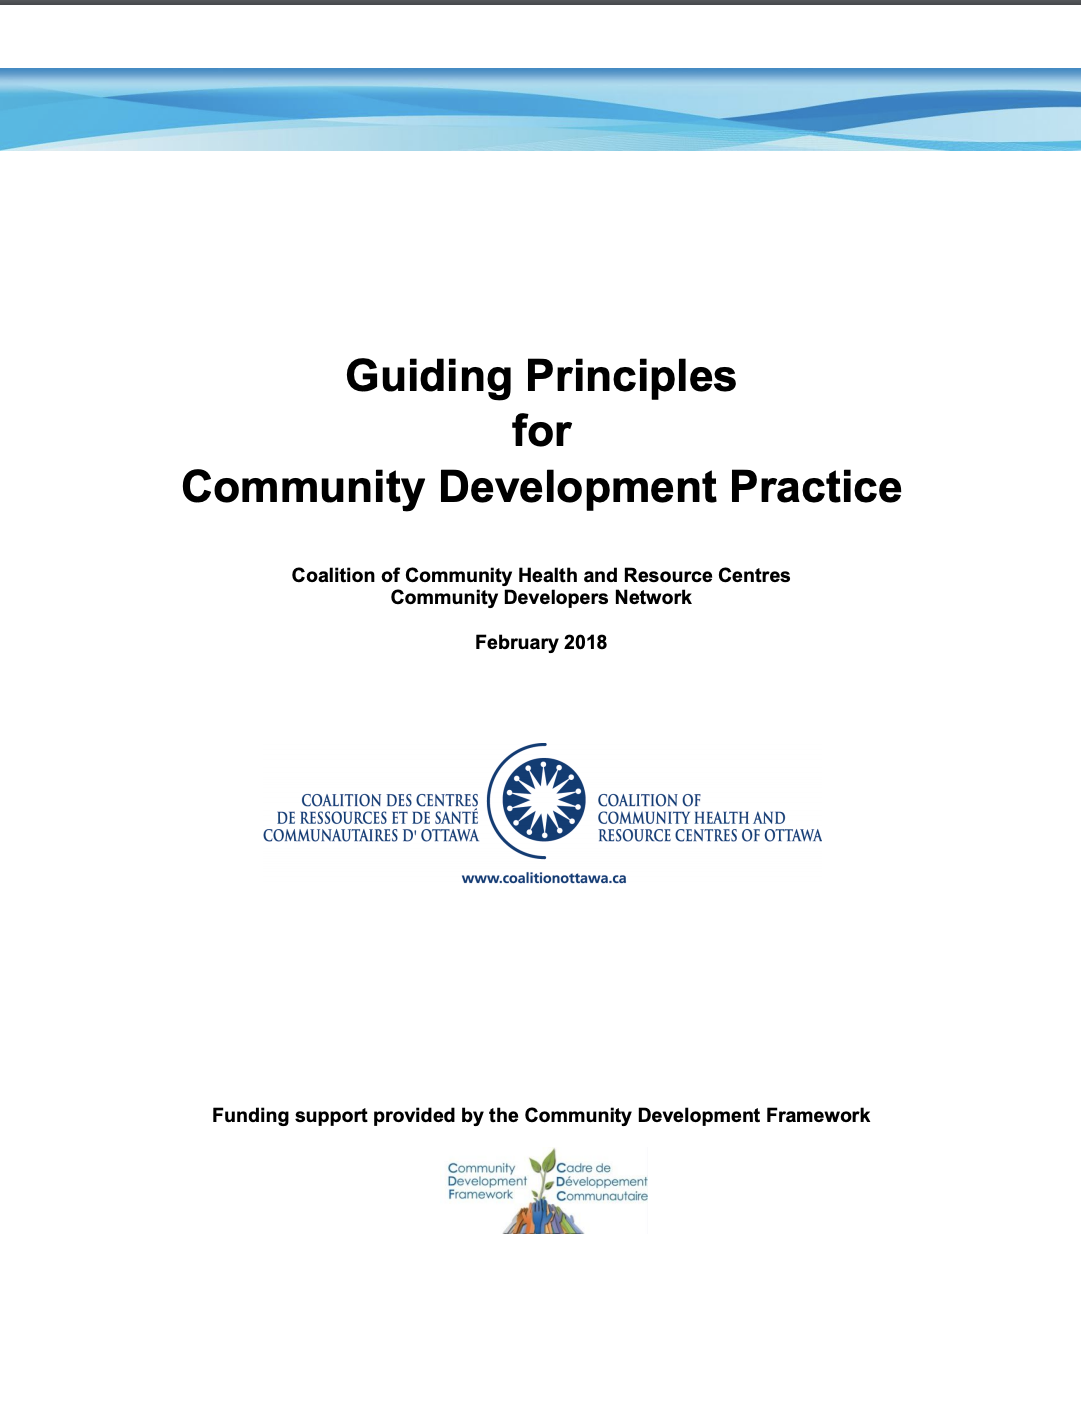 Guiding Principles for Community Development Practice